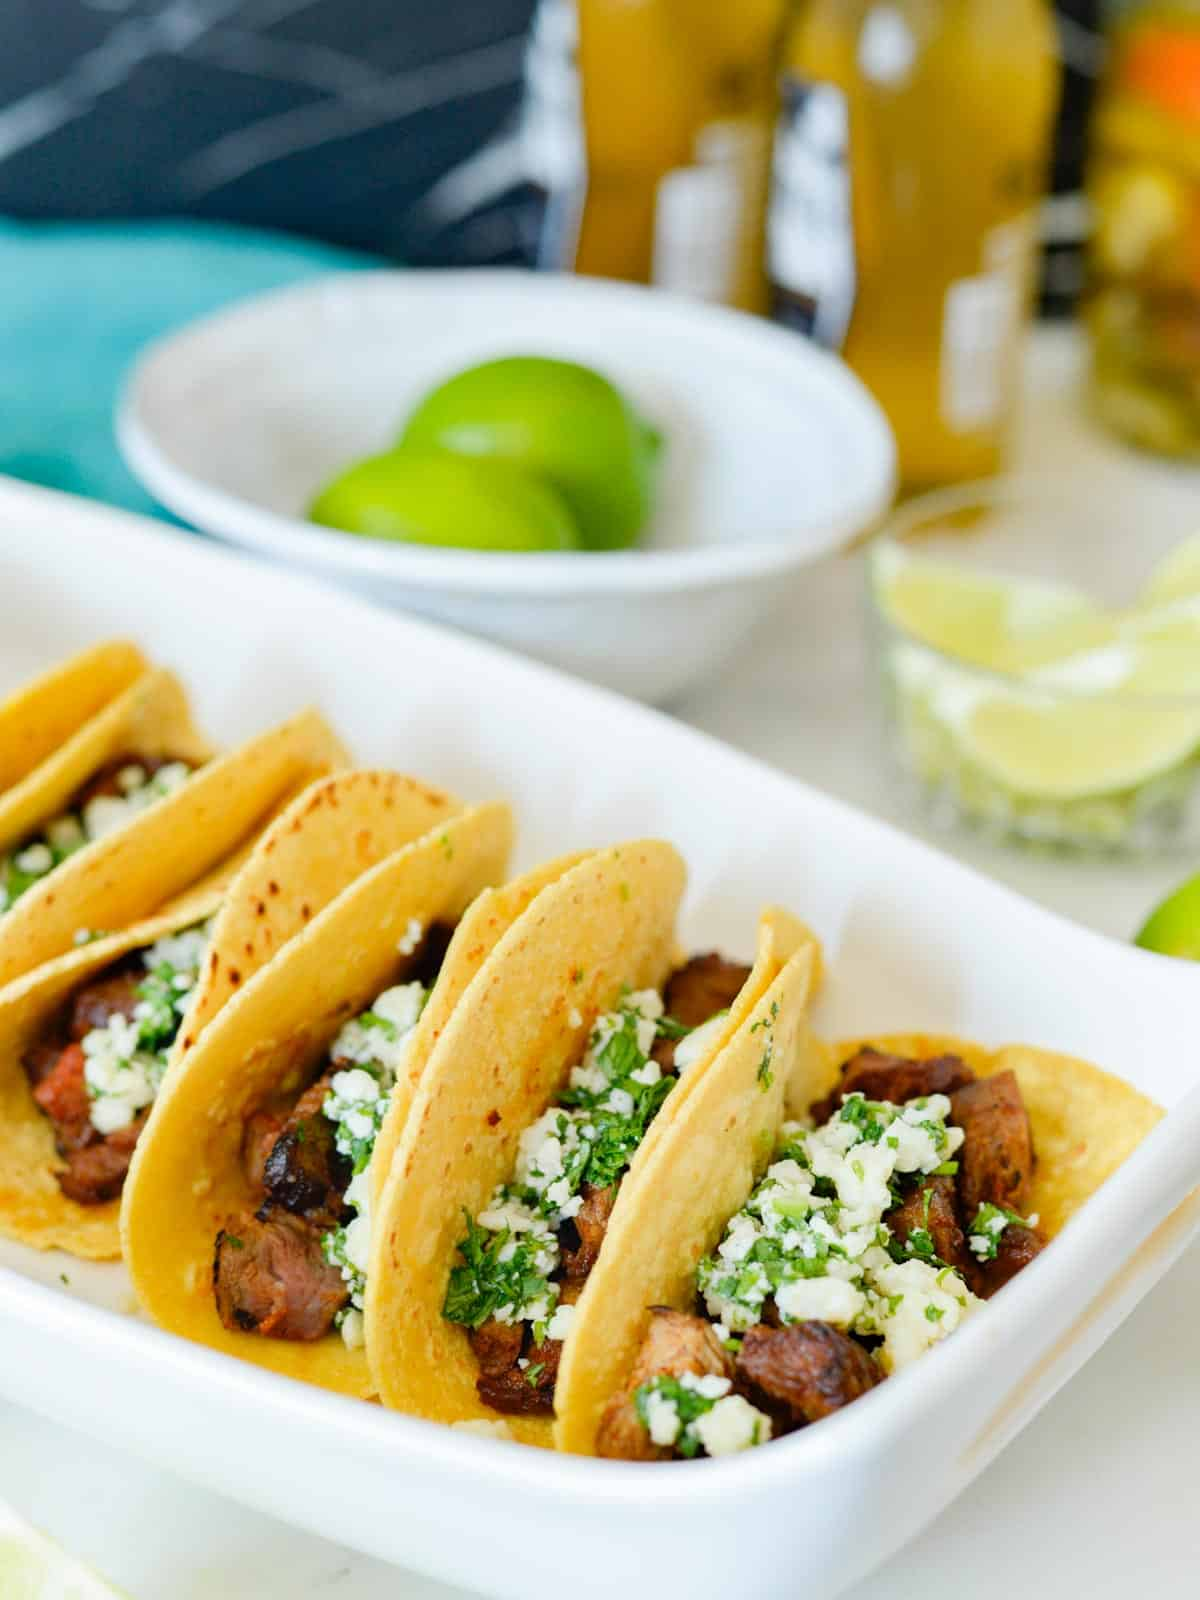 carne asada tacos served at a cookout with fresh limes and cotija cheese